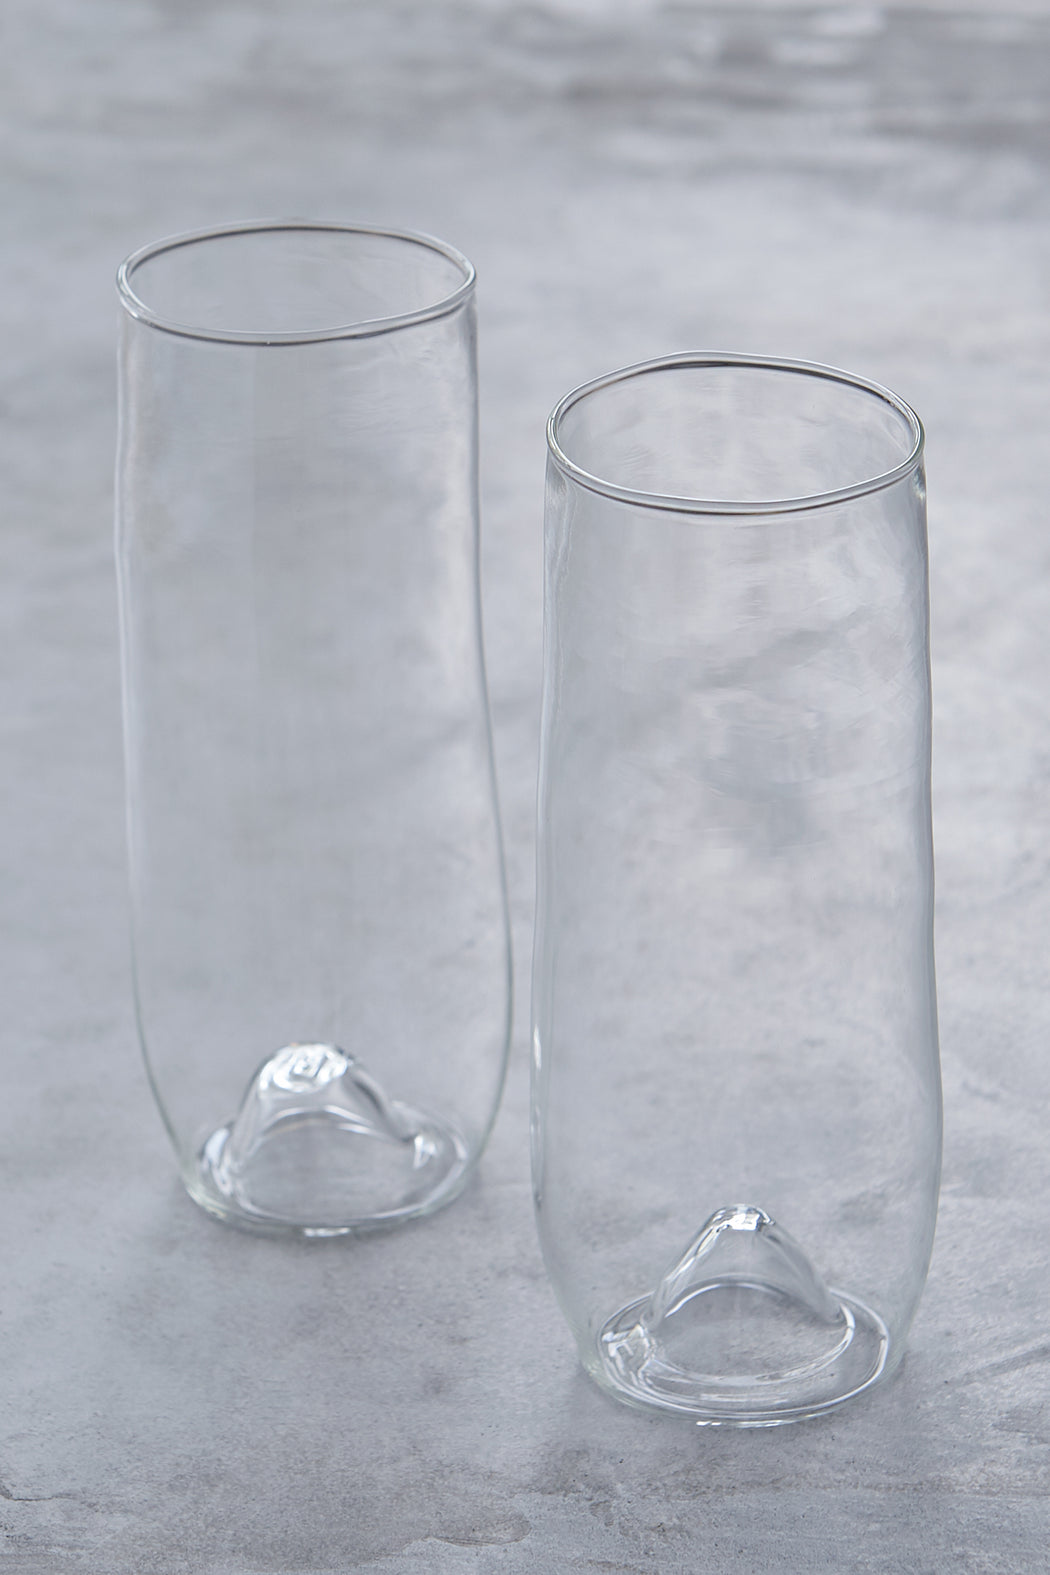 Malfatti Glassware Hand-Blown Prosecco Glasses